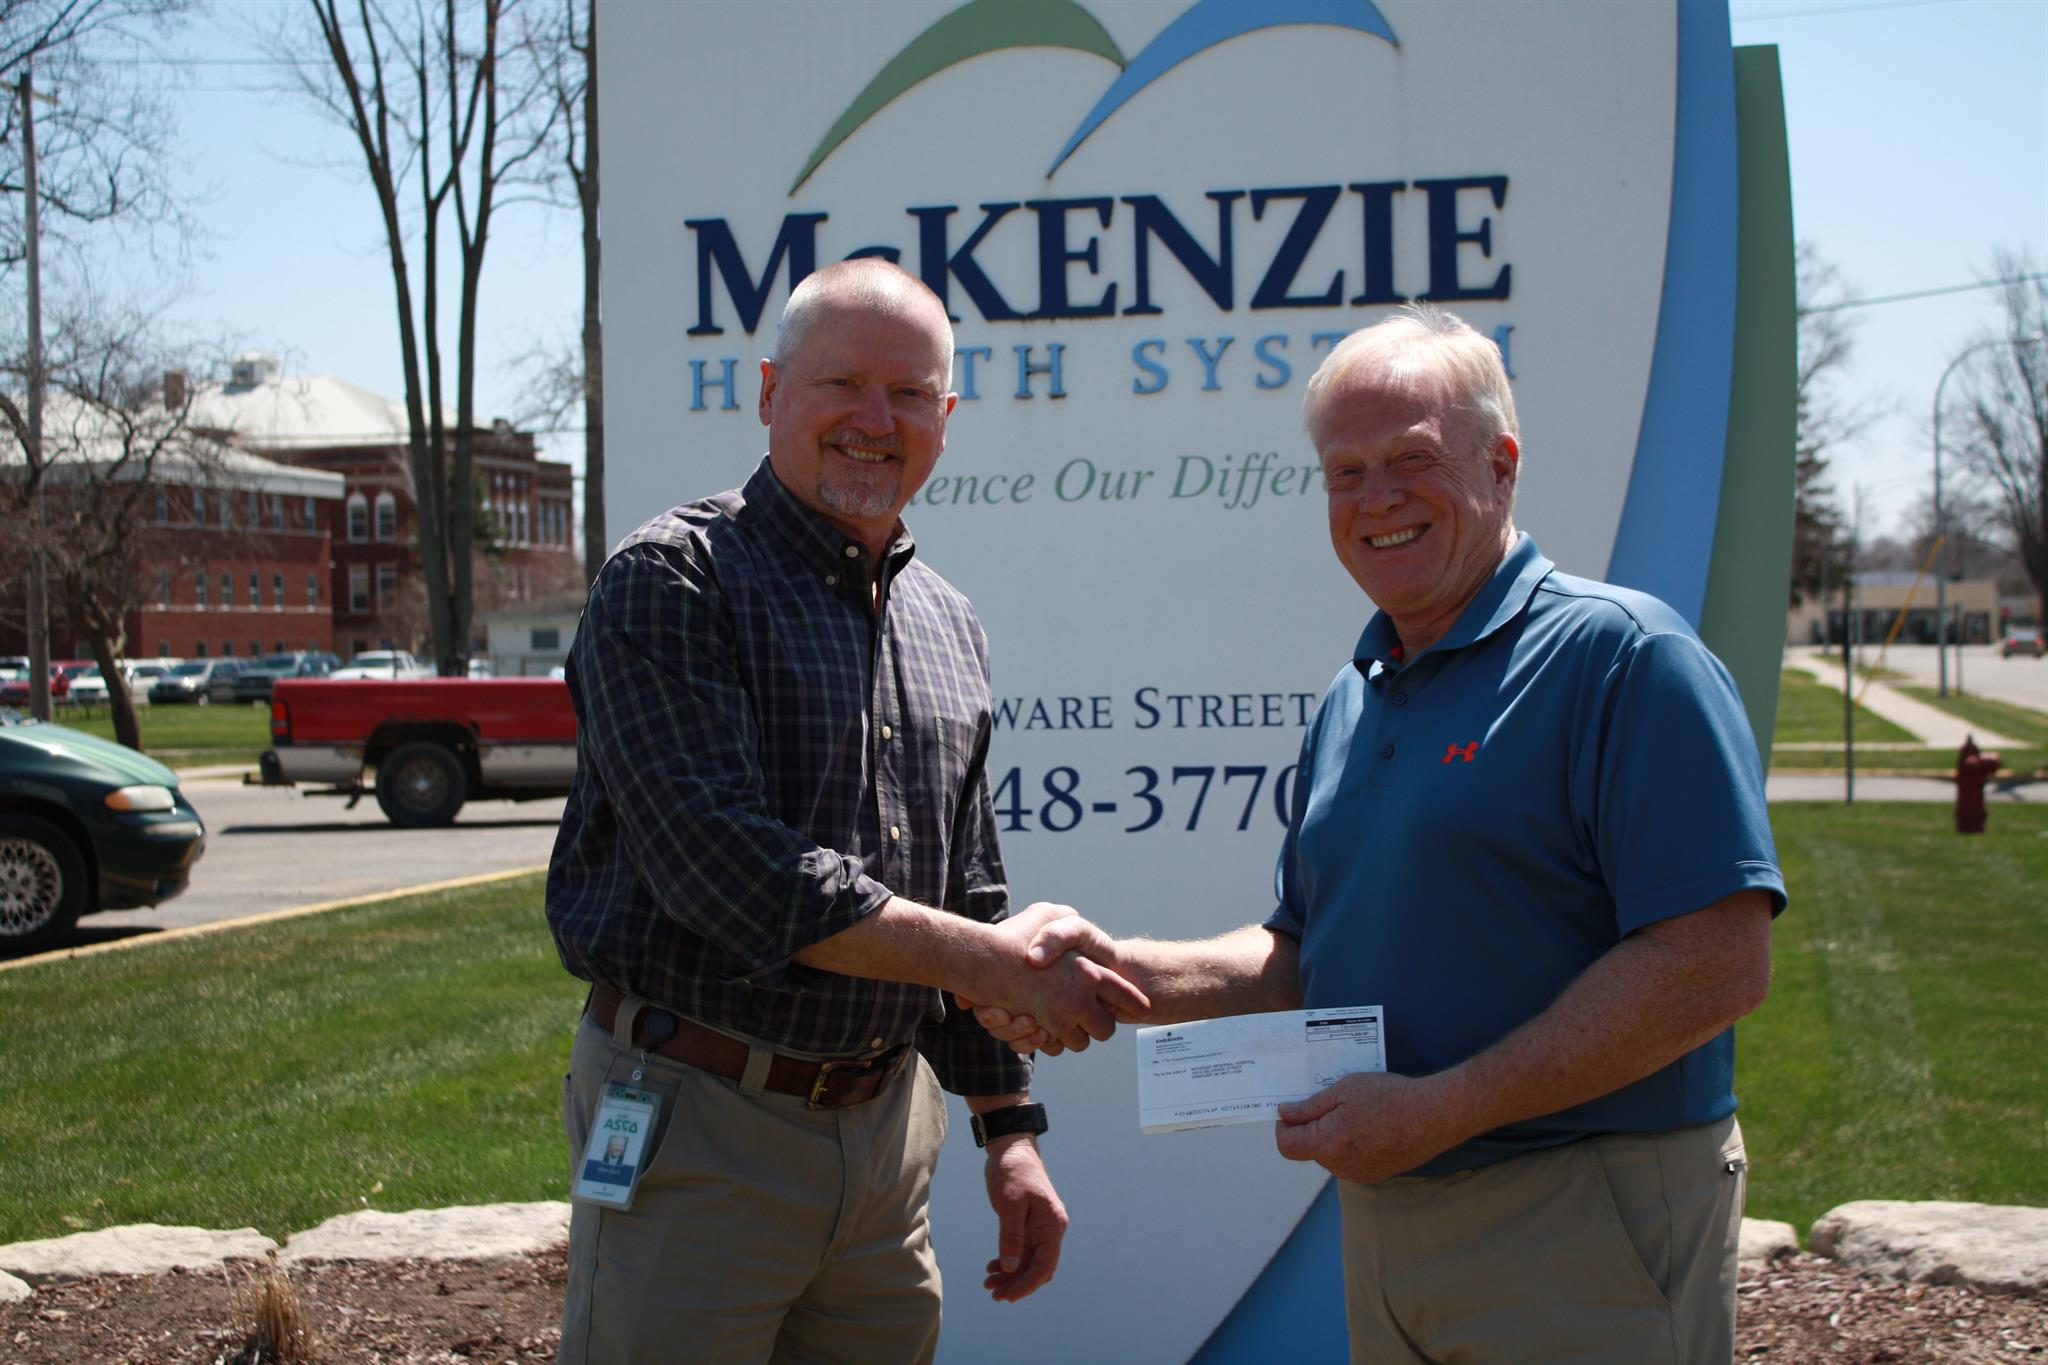 Mike Bach (left), Director of Operations at Numatics presents check to Steve Barnett, DHA, CRNA, FACHE, President/CEO at McKenzie Health System.